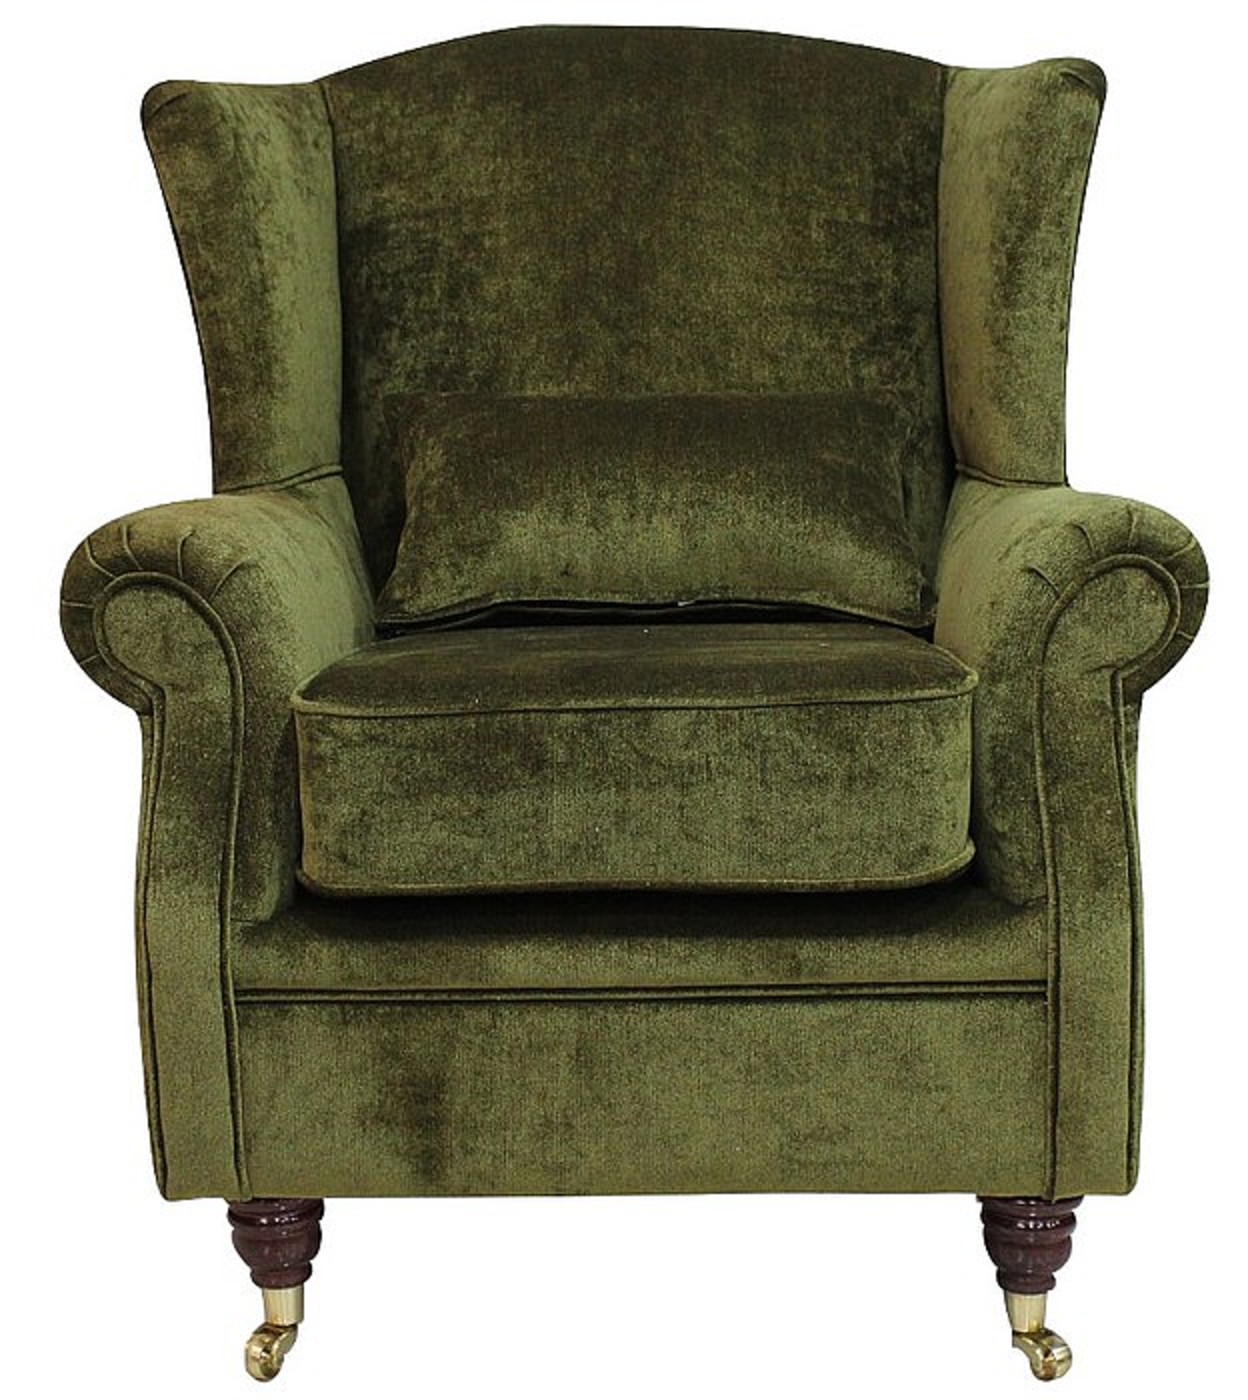 chesterfield style fabric sofa black table with wine rack wing chair fireside high back armchair velluto moss green ...